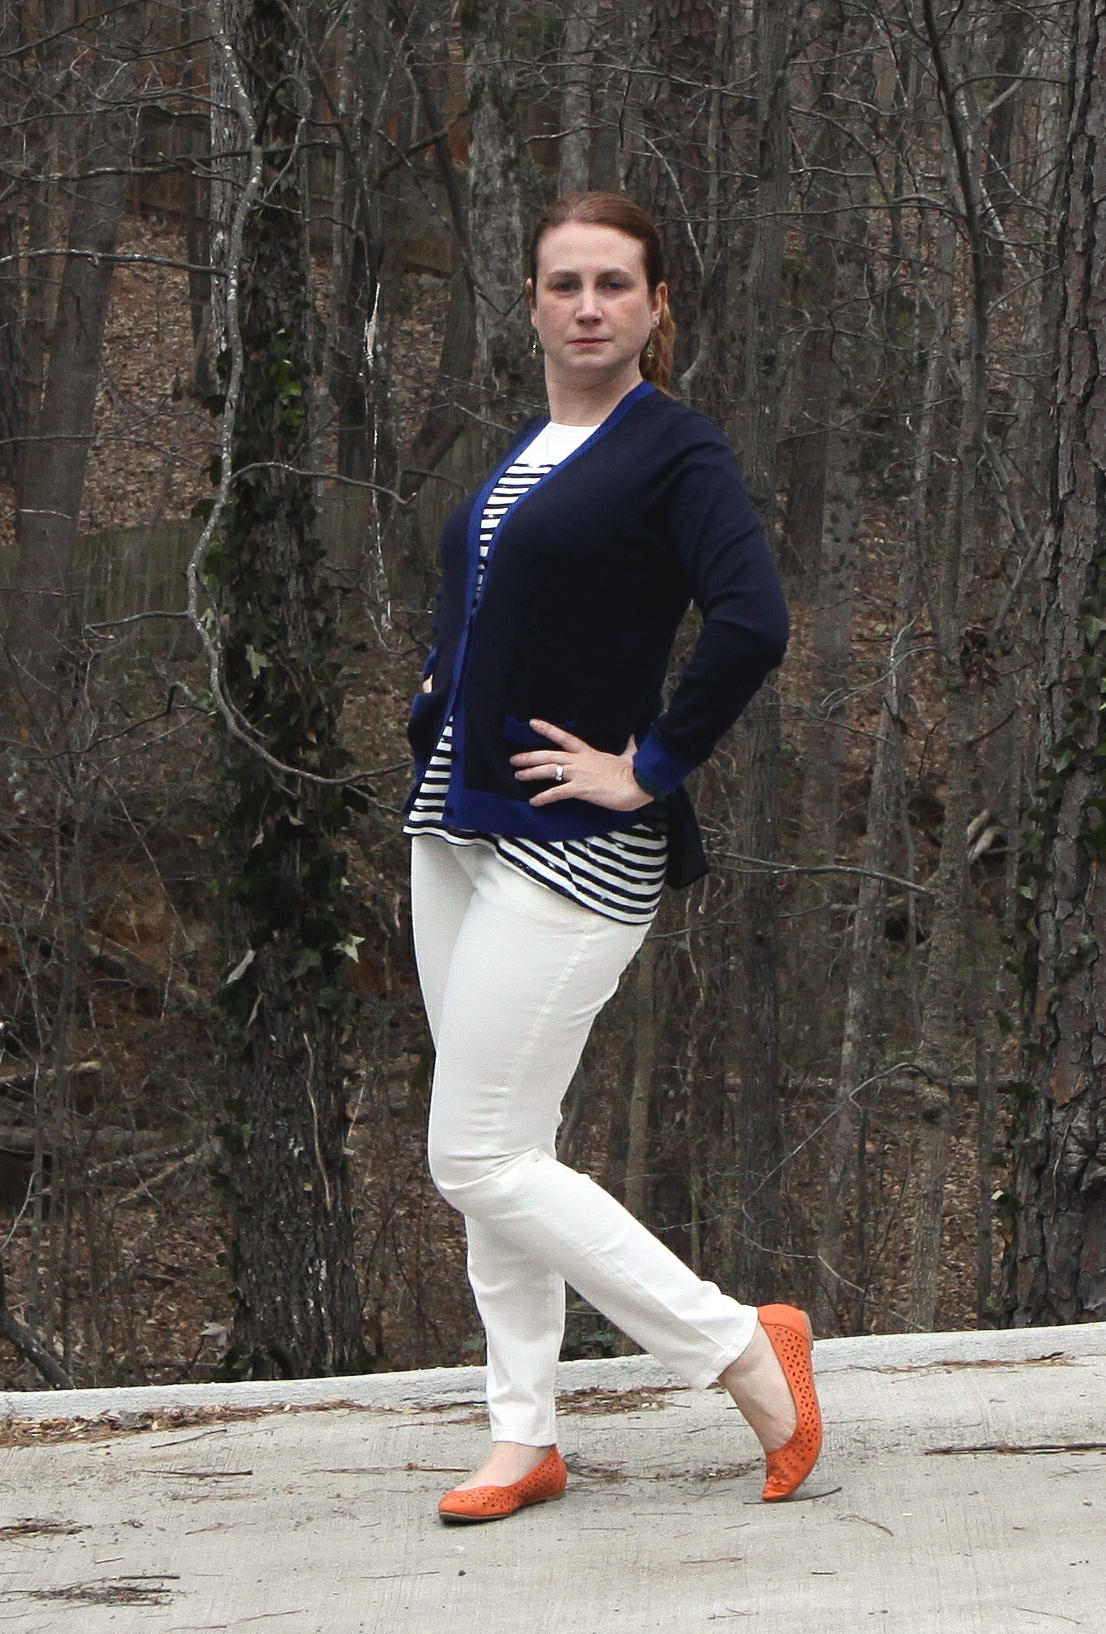 Outfit:  Michelle Cardigan ,  Slimmie  jeans,  First Mate Tee ,  Dolce Charm Earrings  from  cabi Spring 2016 .The cardigan and jeans are a size too big--expect a closer fit. Shoes are the  Restricted Newport Flat  from DSW.